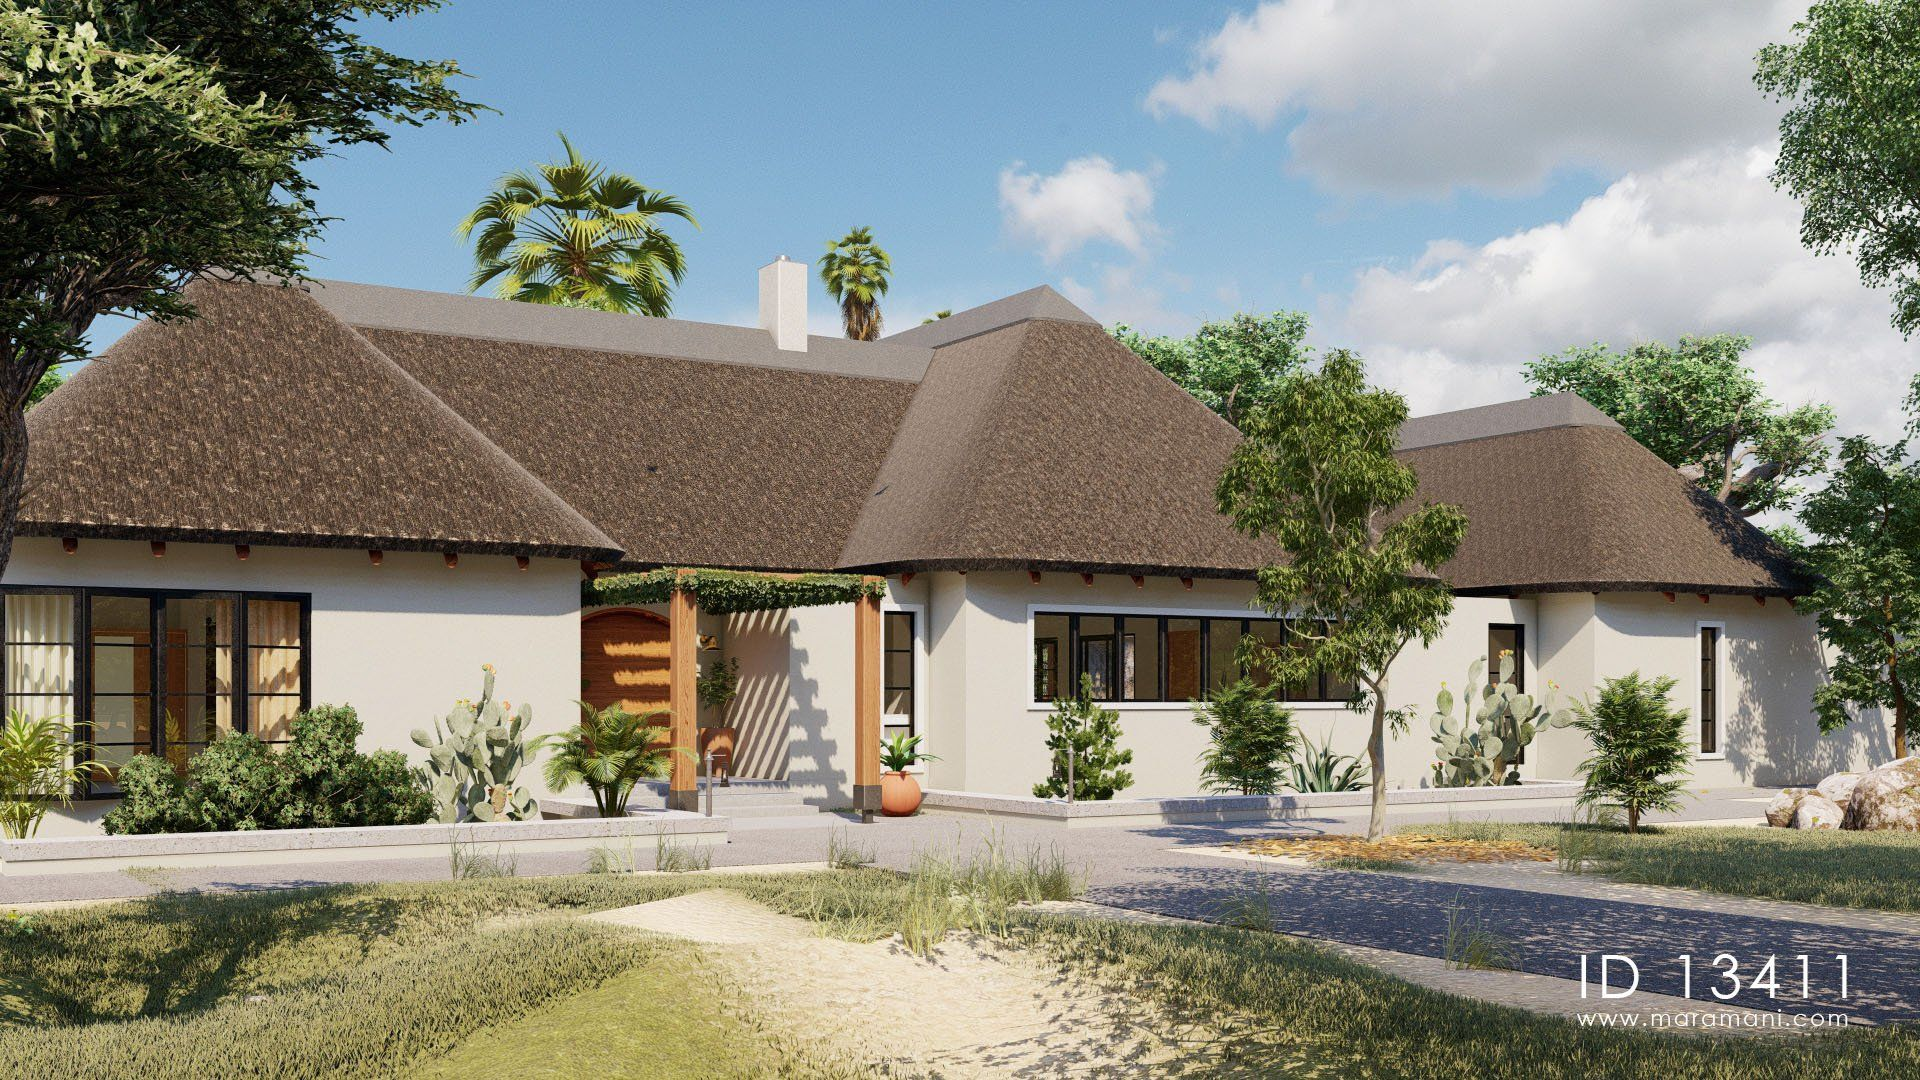 Thatch Roof Villa Id 13411 Thatched Roof Beautiful House Plans House Plans Mansion